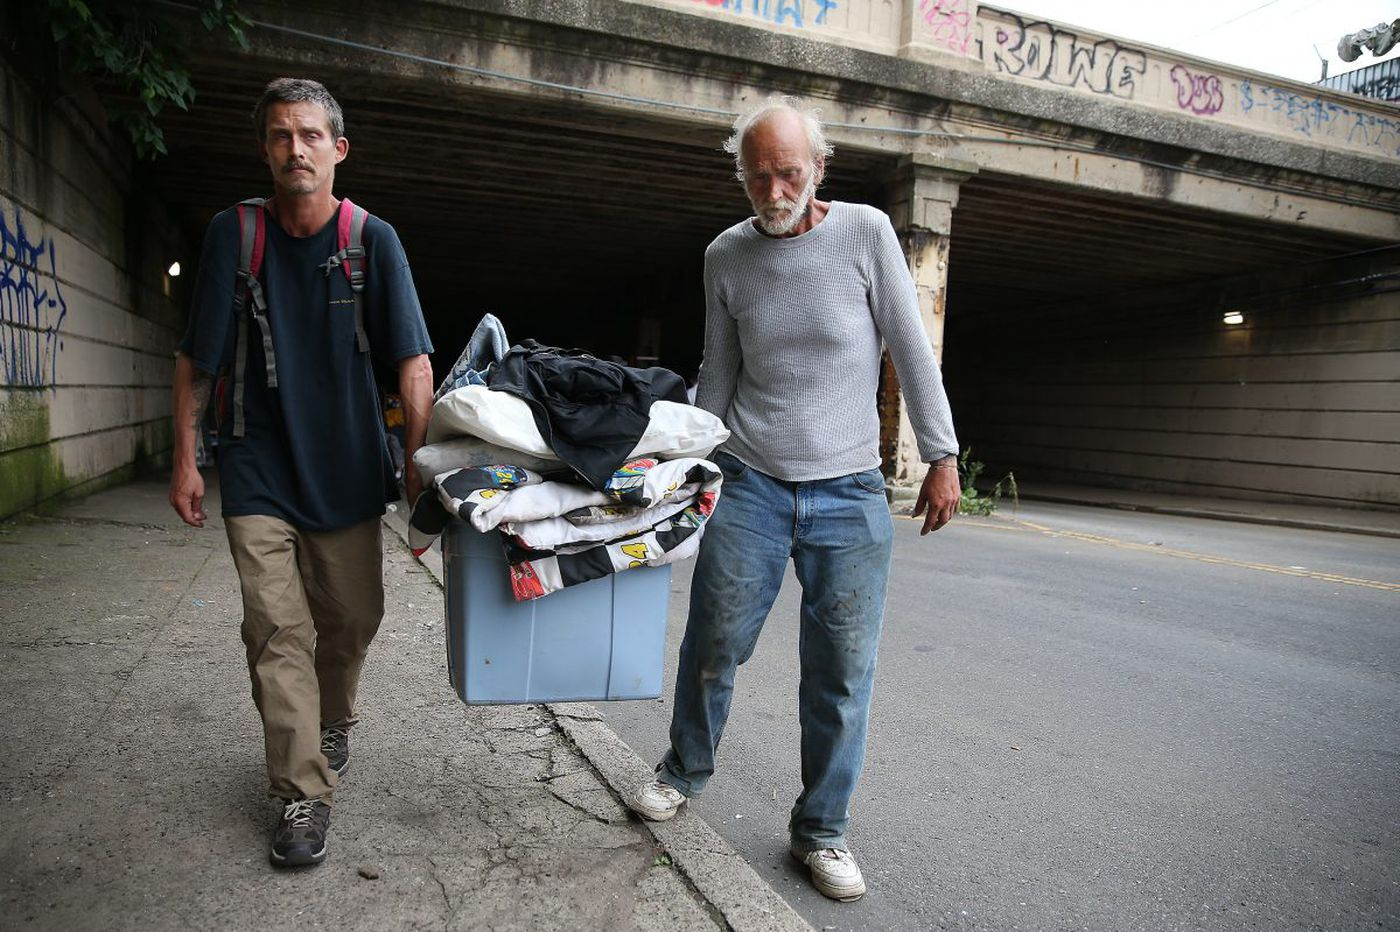 A father and son, evicted from a heroin camp, move on in Kensington | Mike Newall